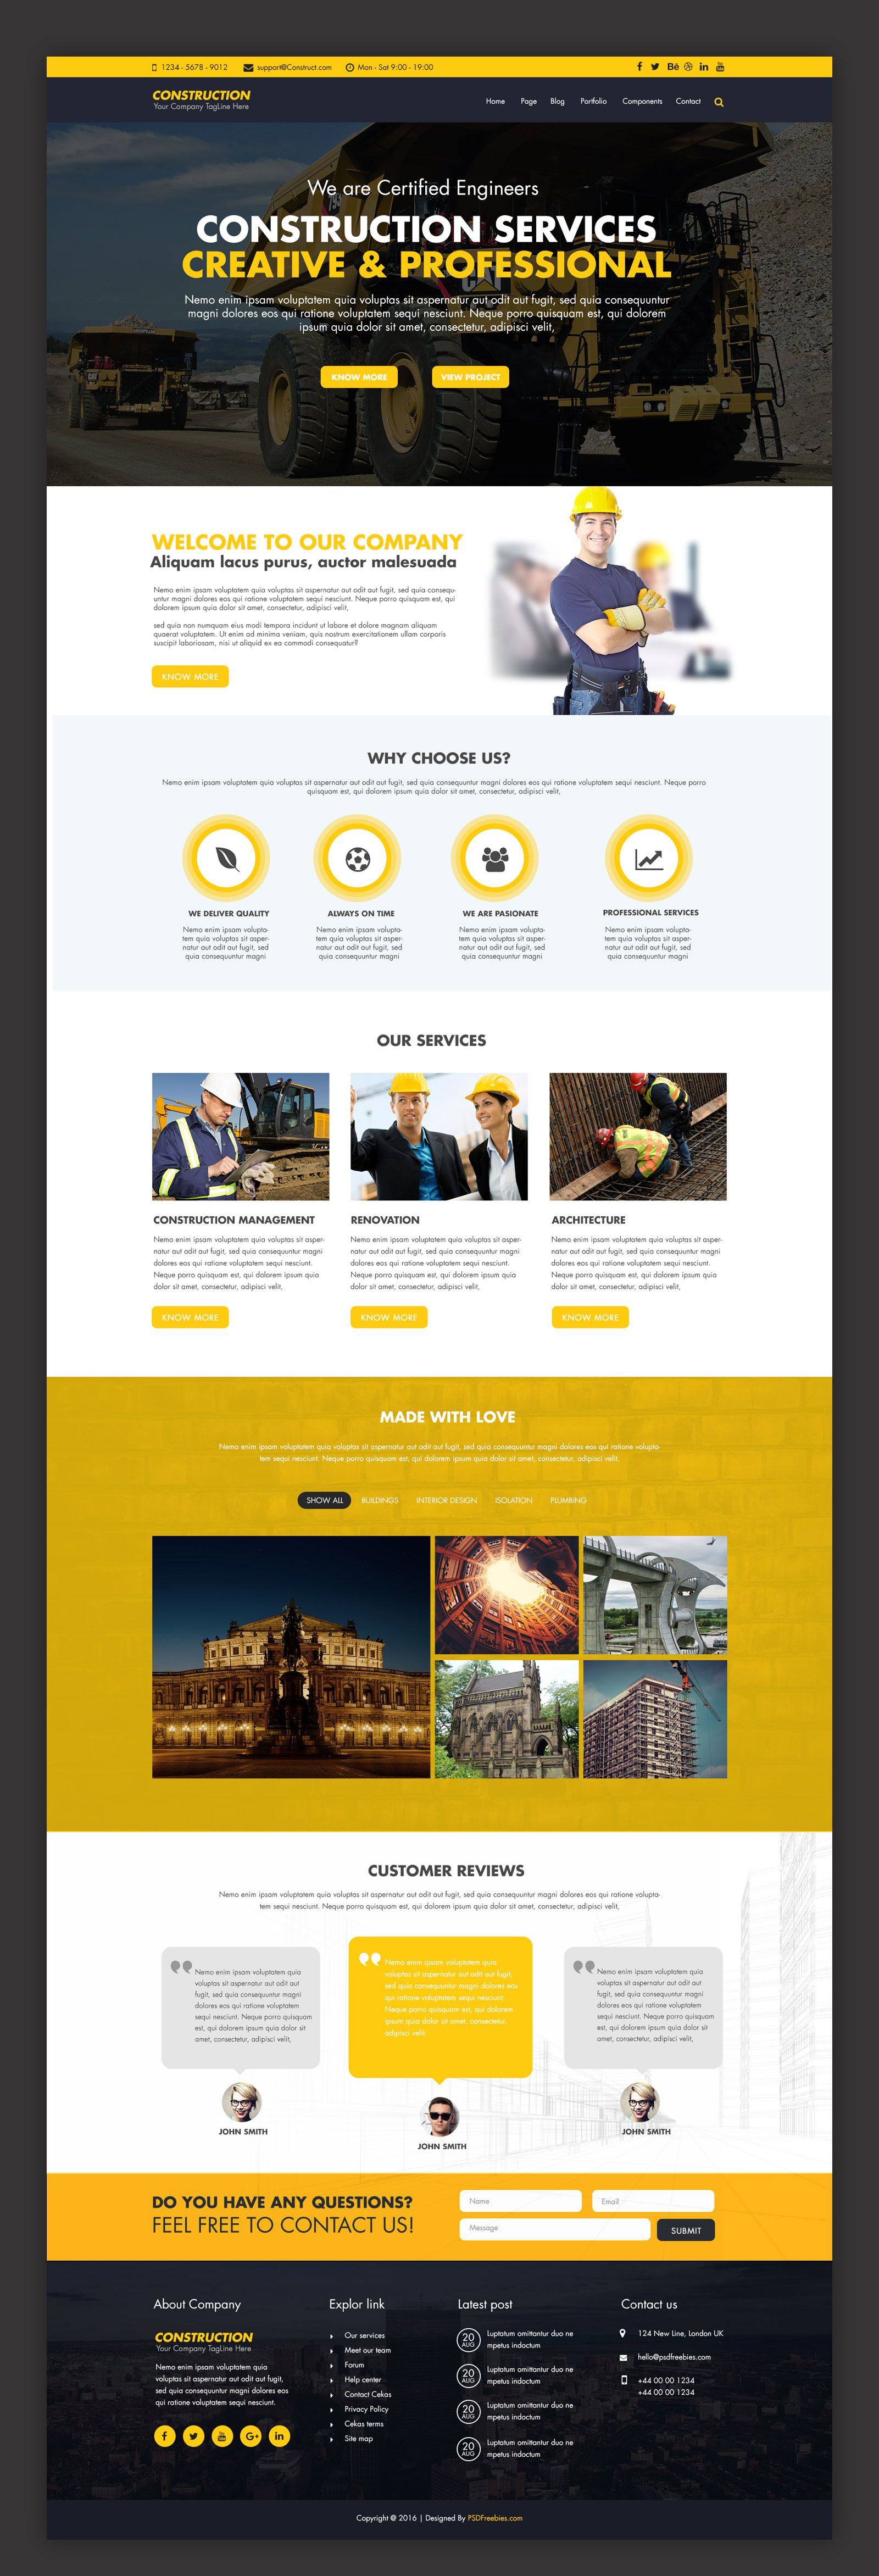 Construction Company Website Template Free Psd Psdfreebies Com Corporate Website Design Company Profile Design Templates Free Website Templates